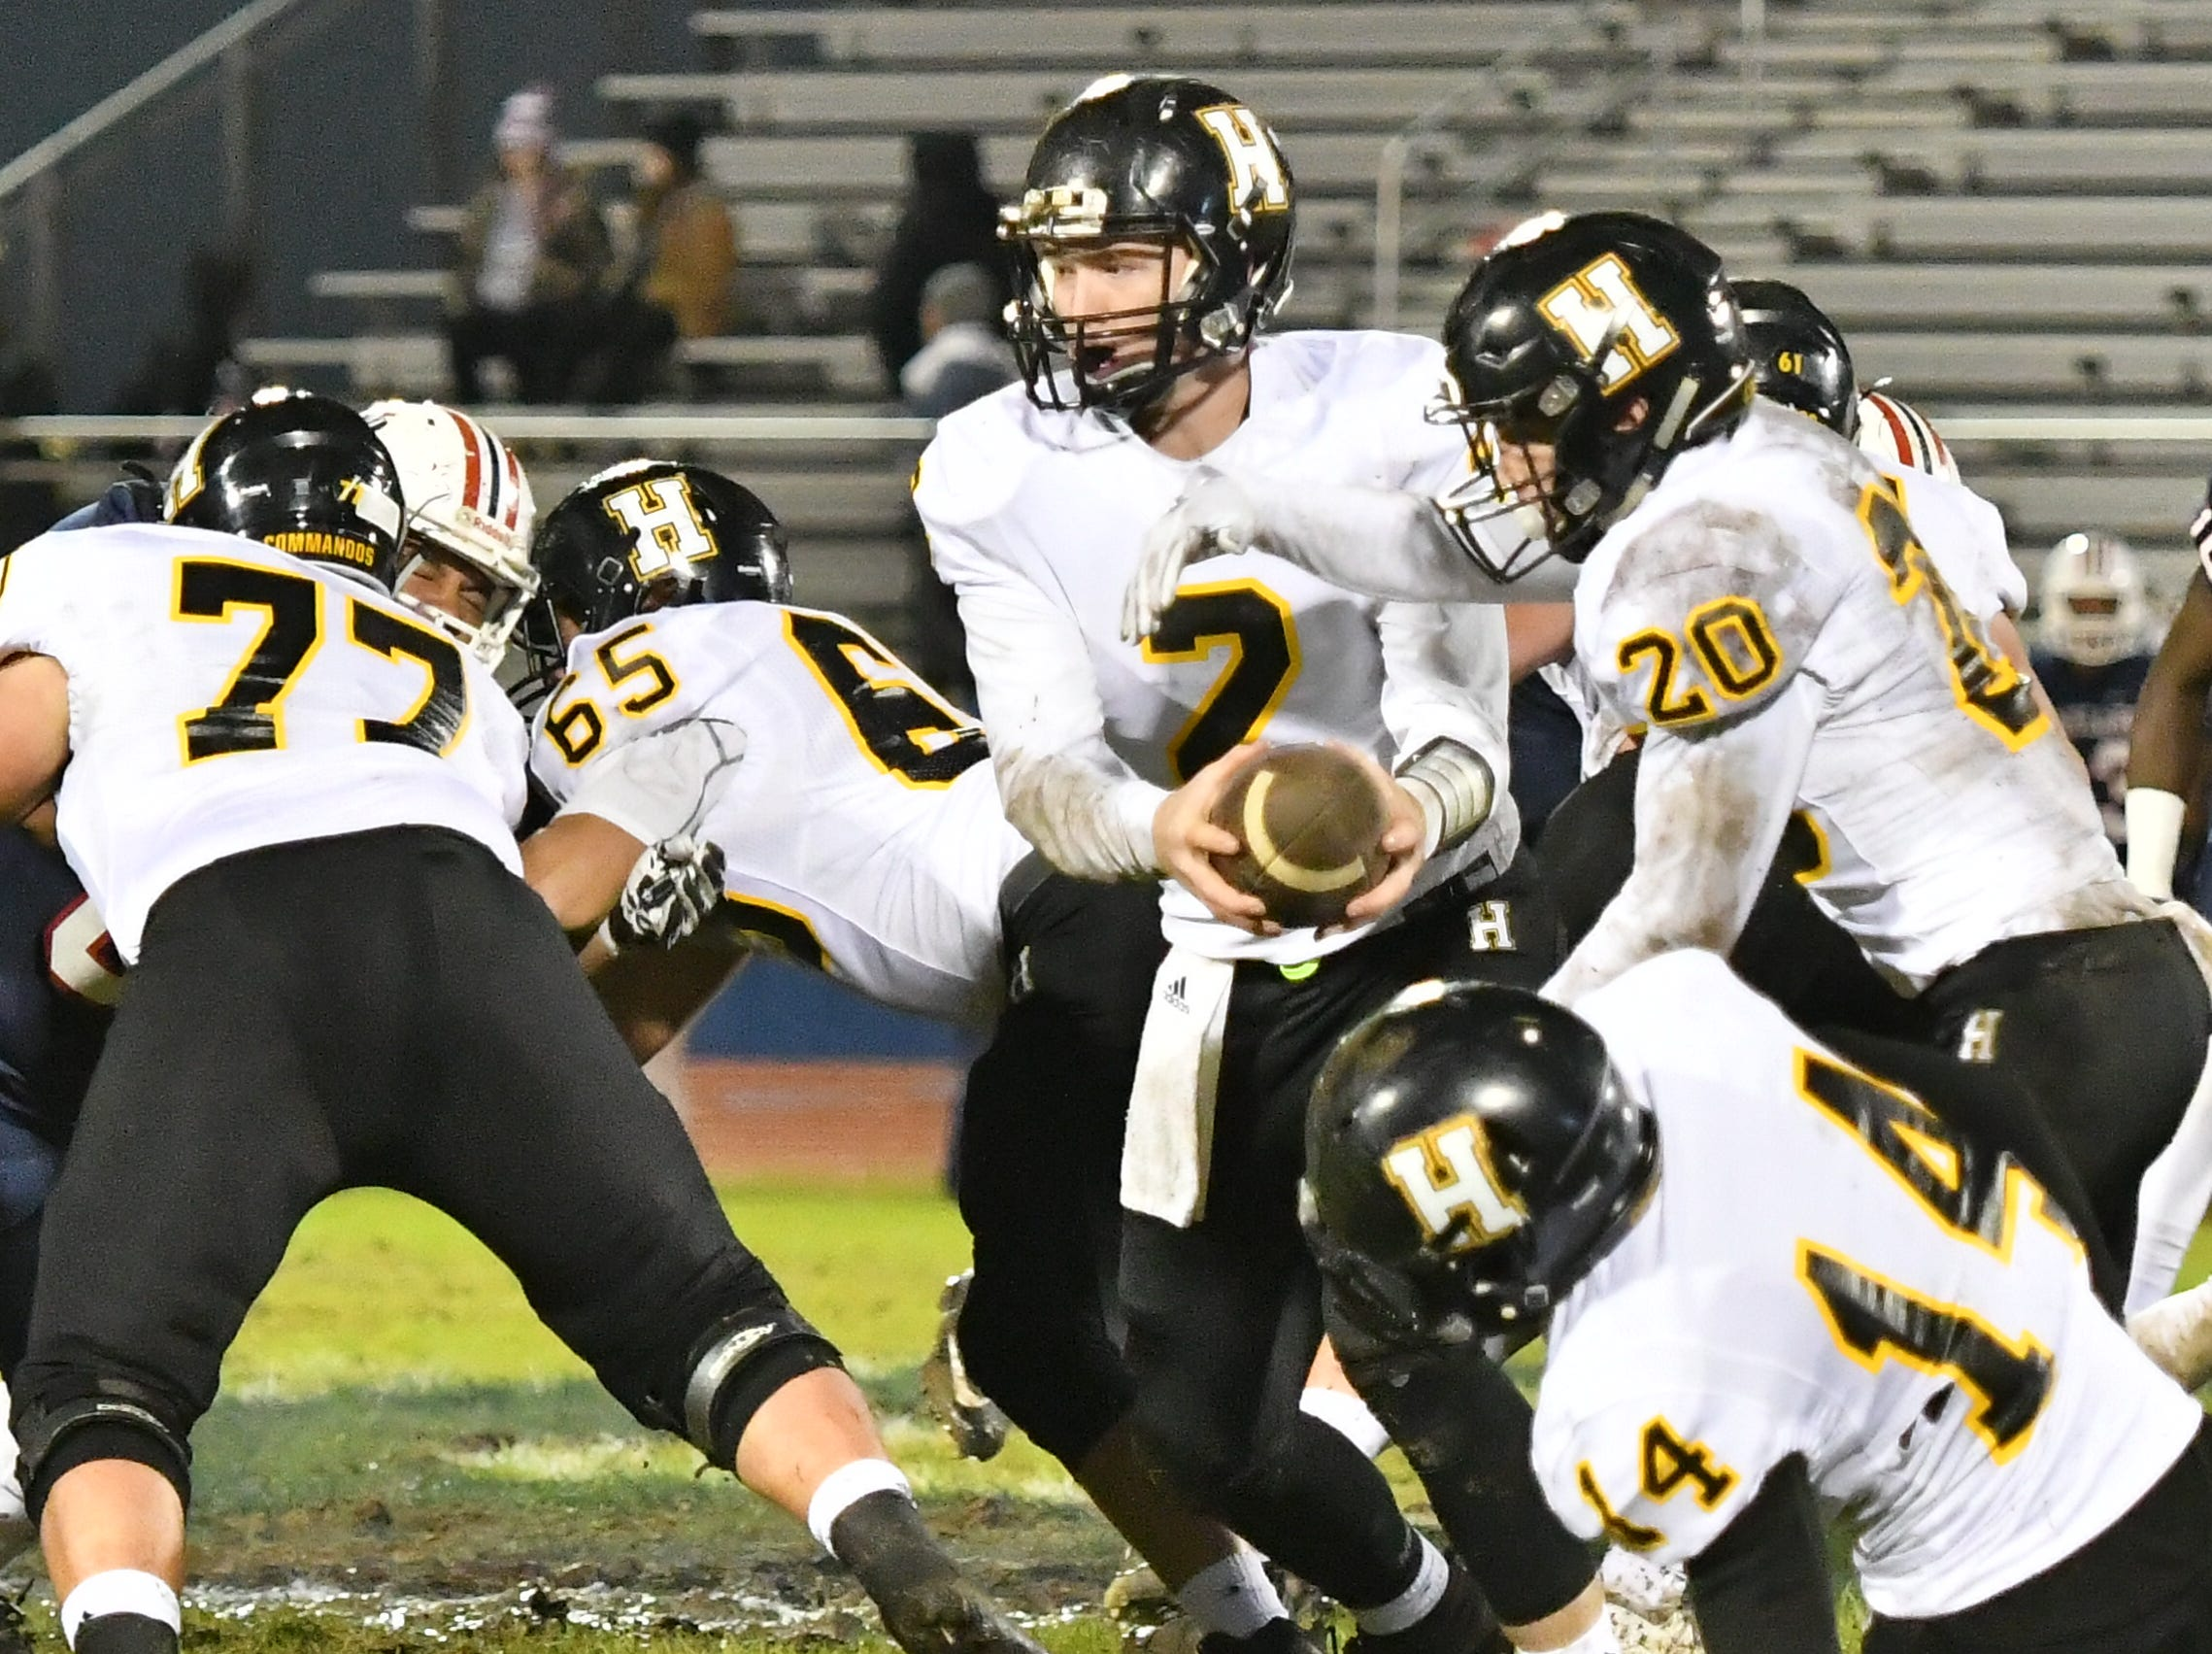 Hendersonville quarterback Drew Hohenbrink hands off to Nate Hancock against Oakland Friday night.